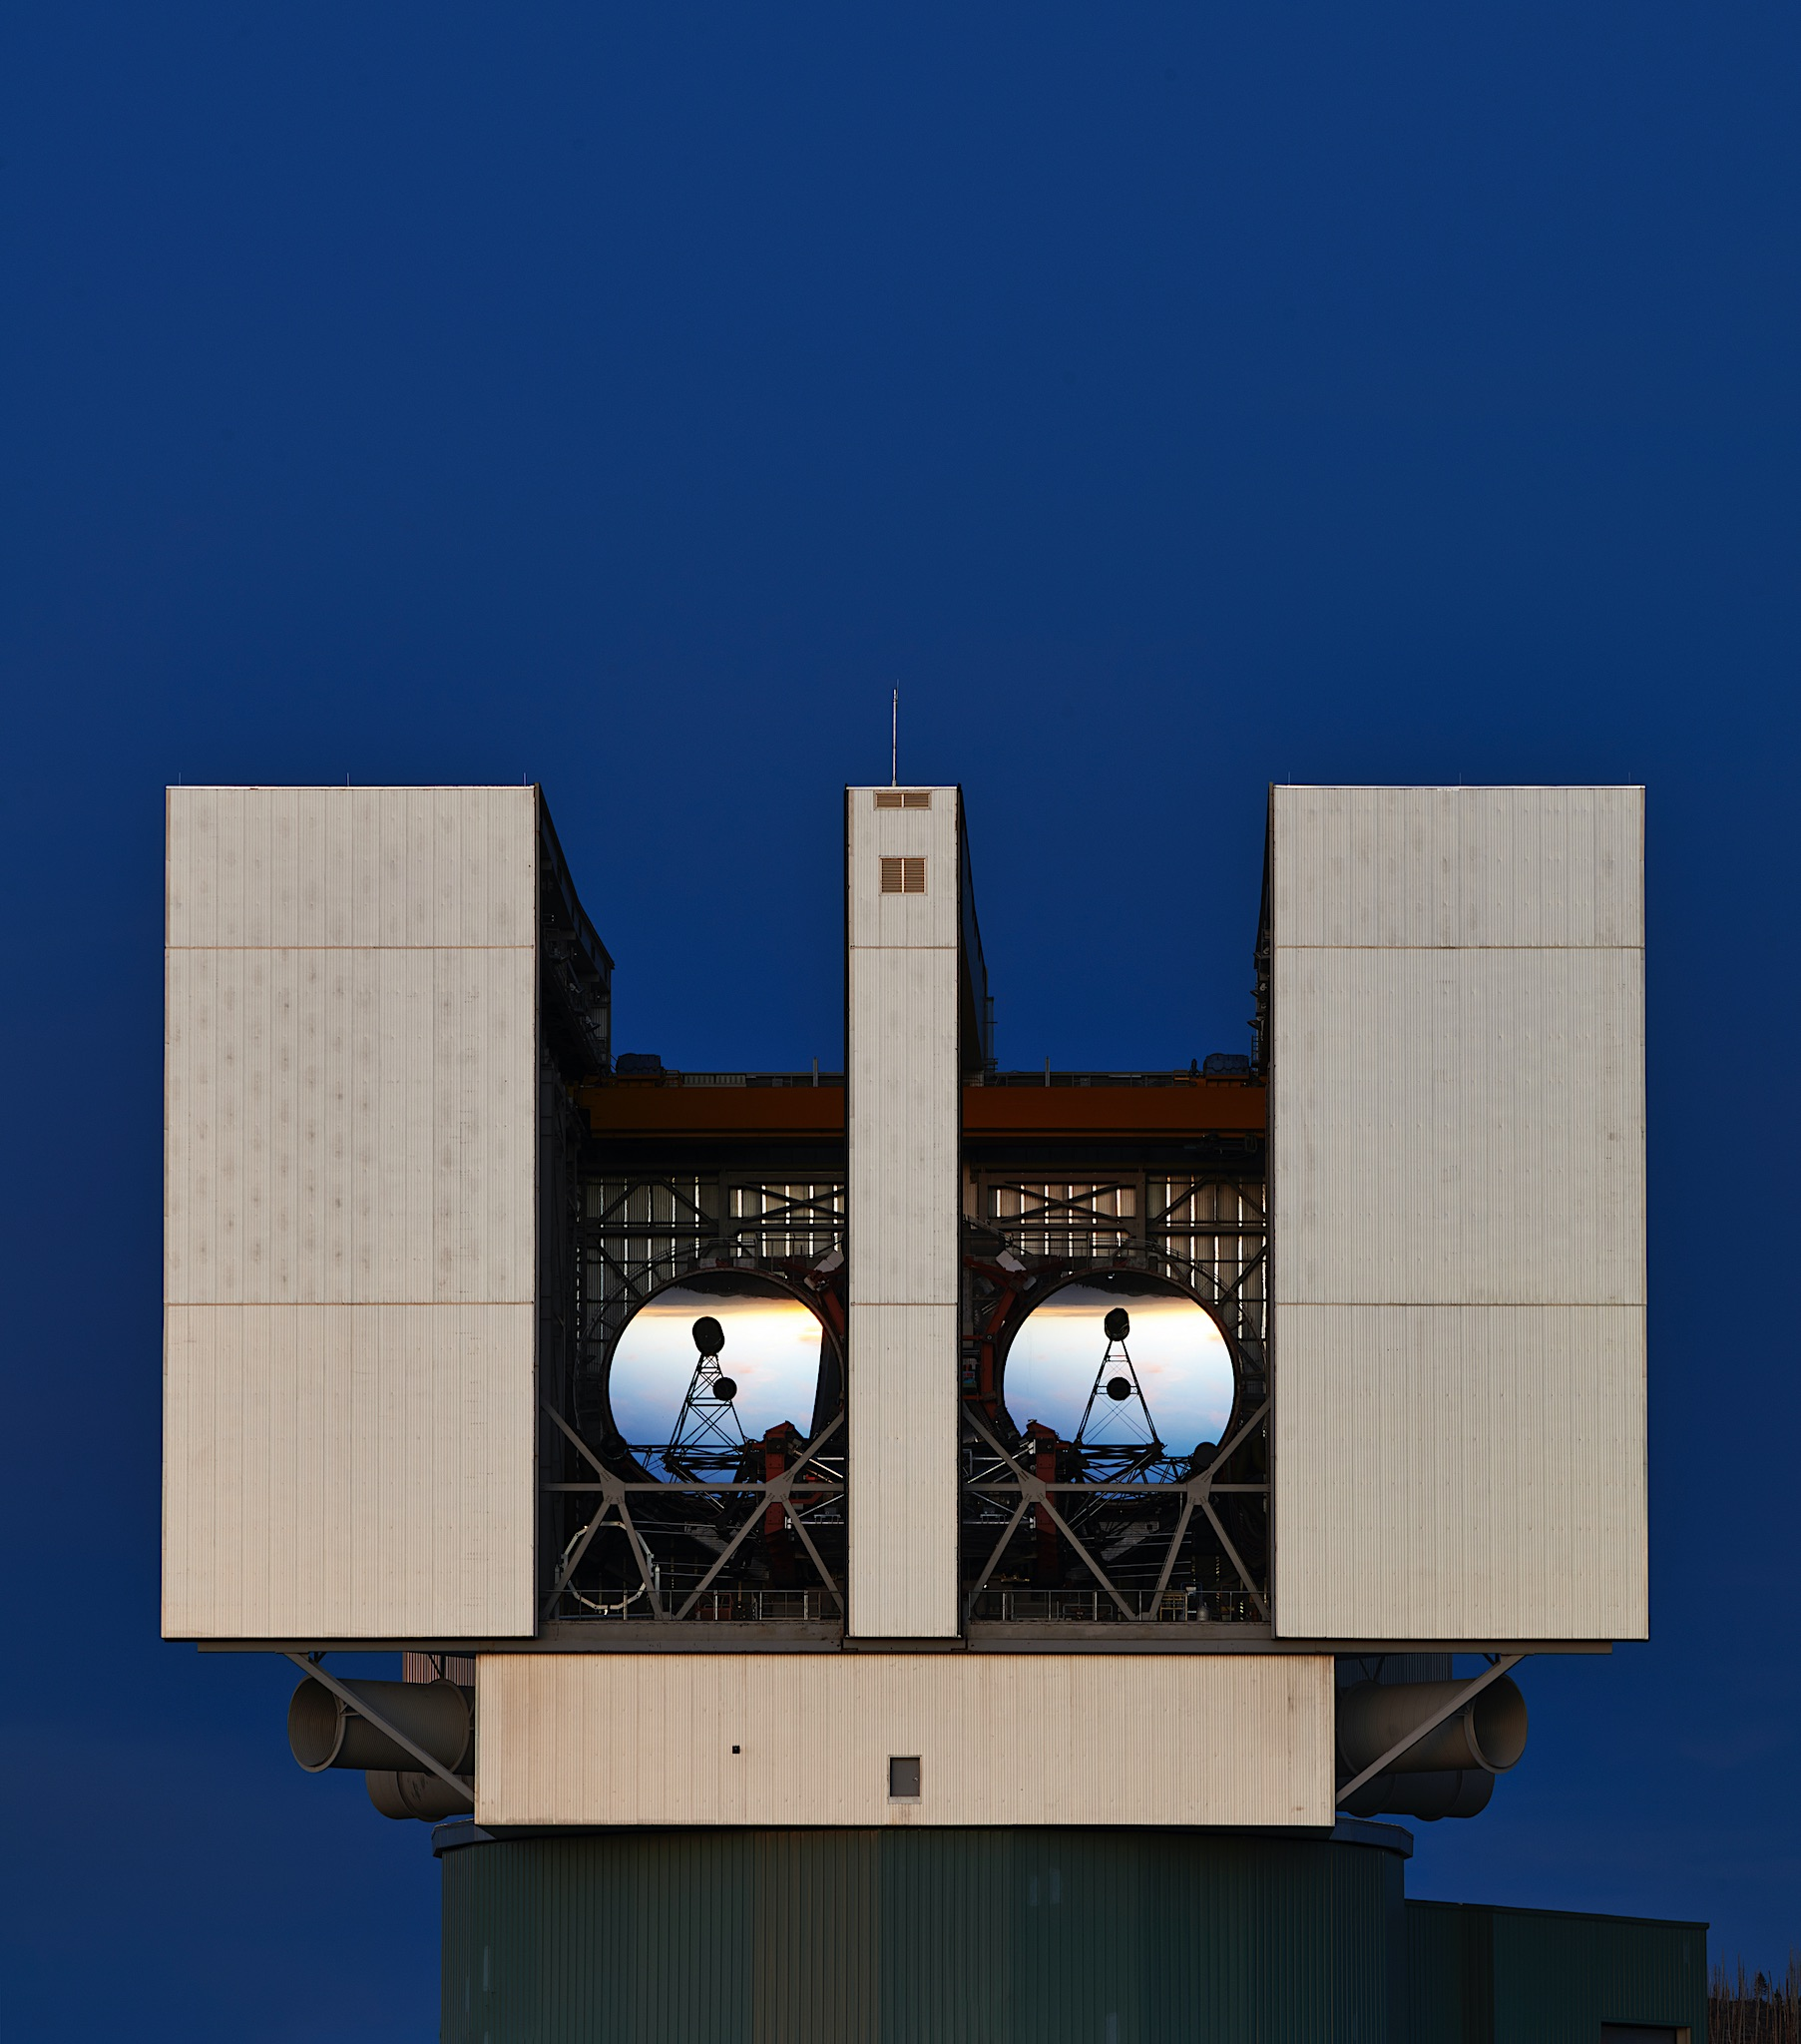 <p>LBT Telescope located at the Mount Graham Observatory at an elevation of 3,221 meters in Arizona</p>